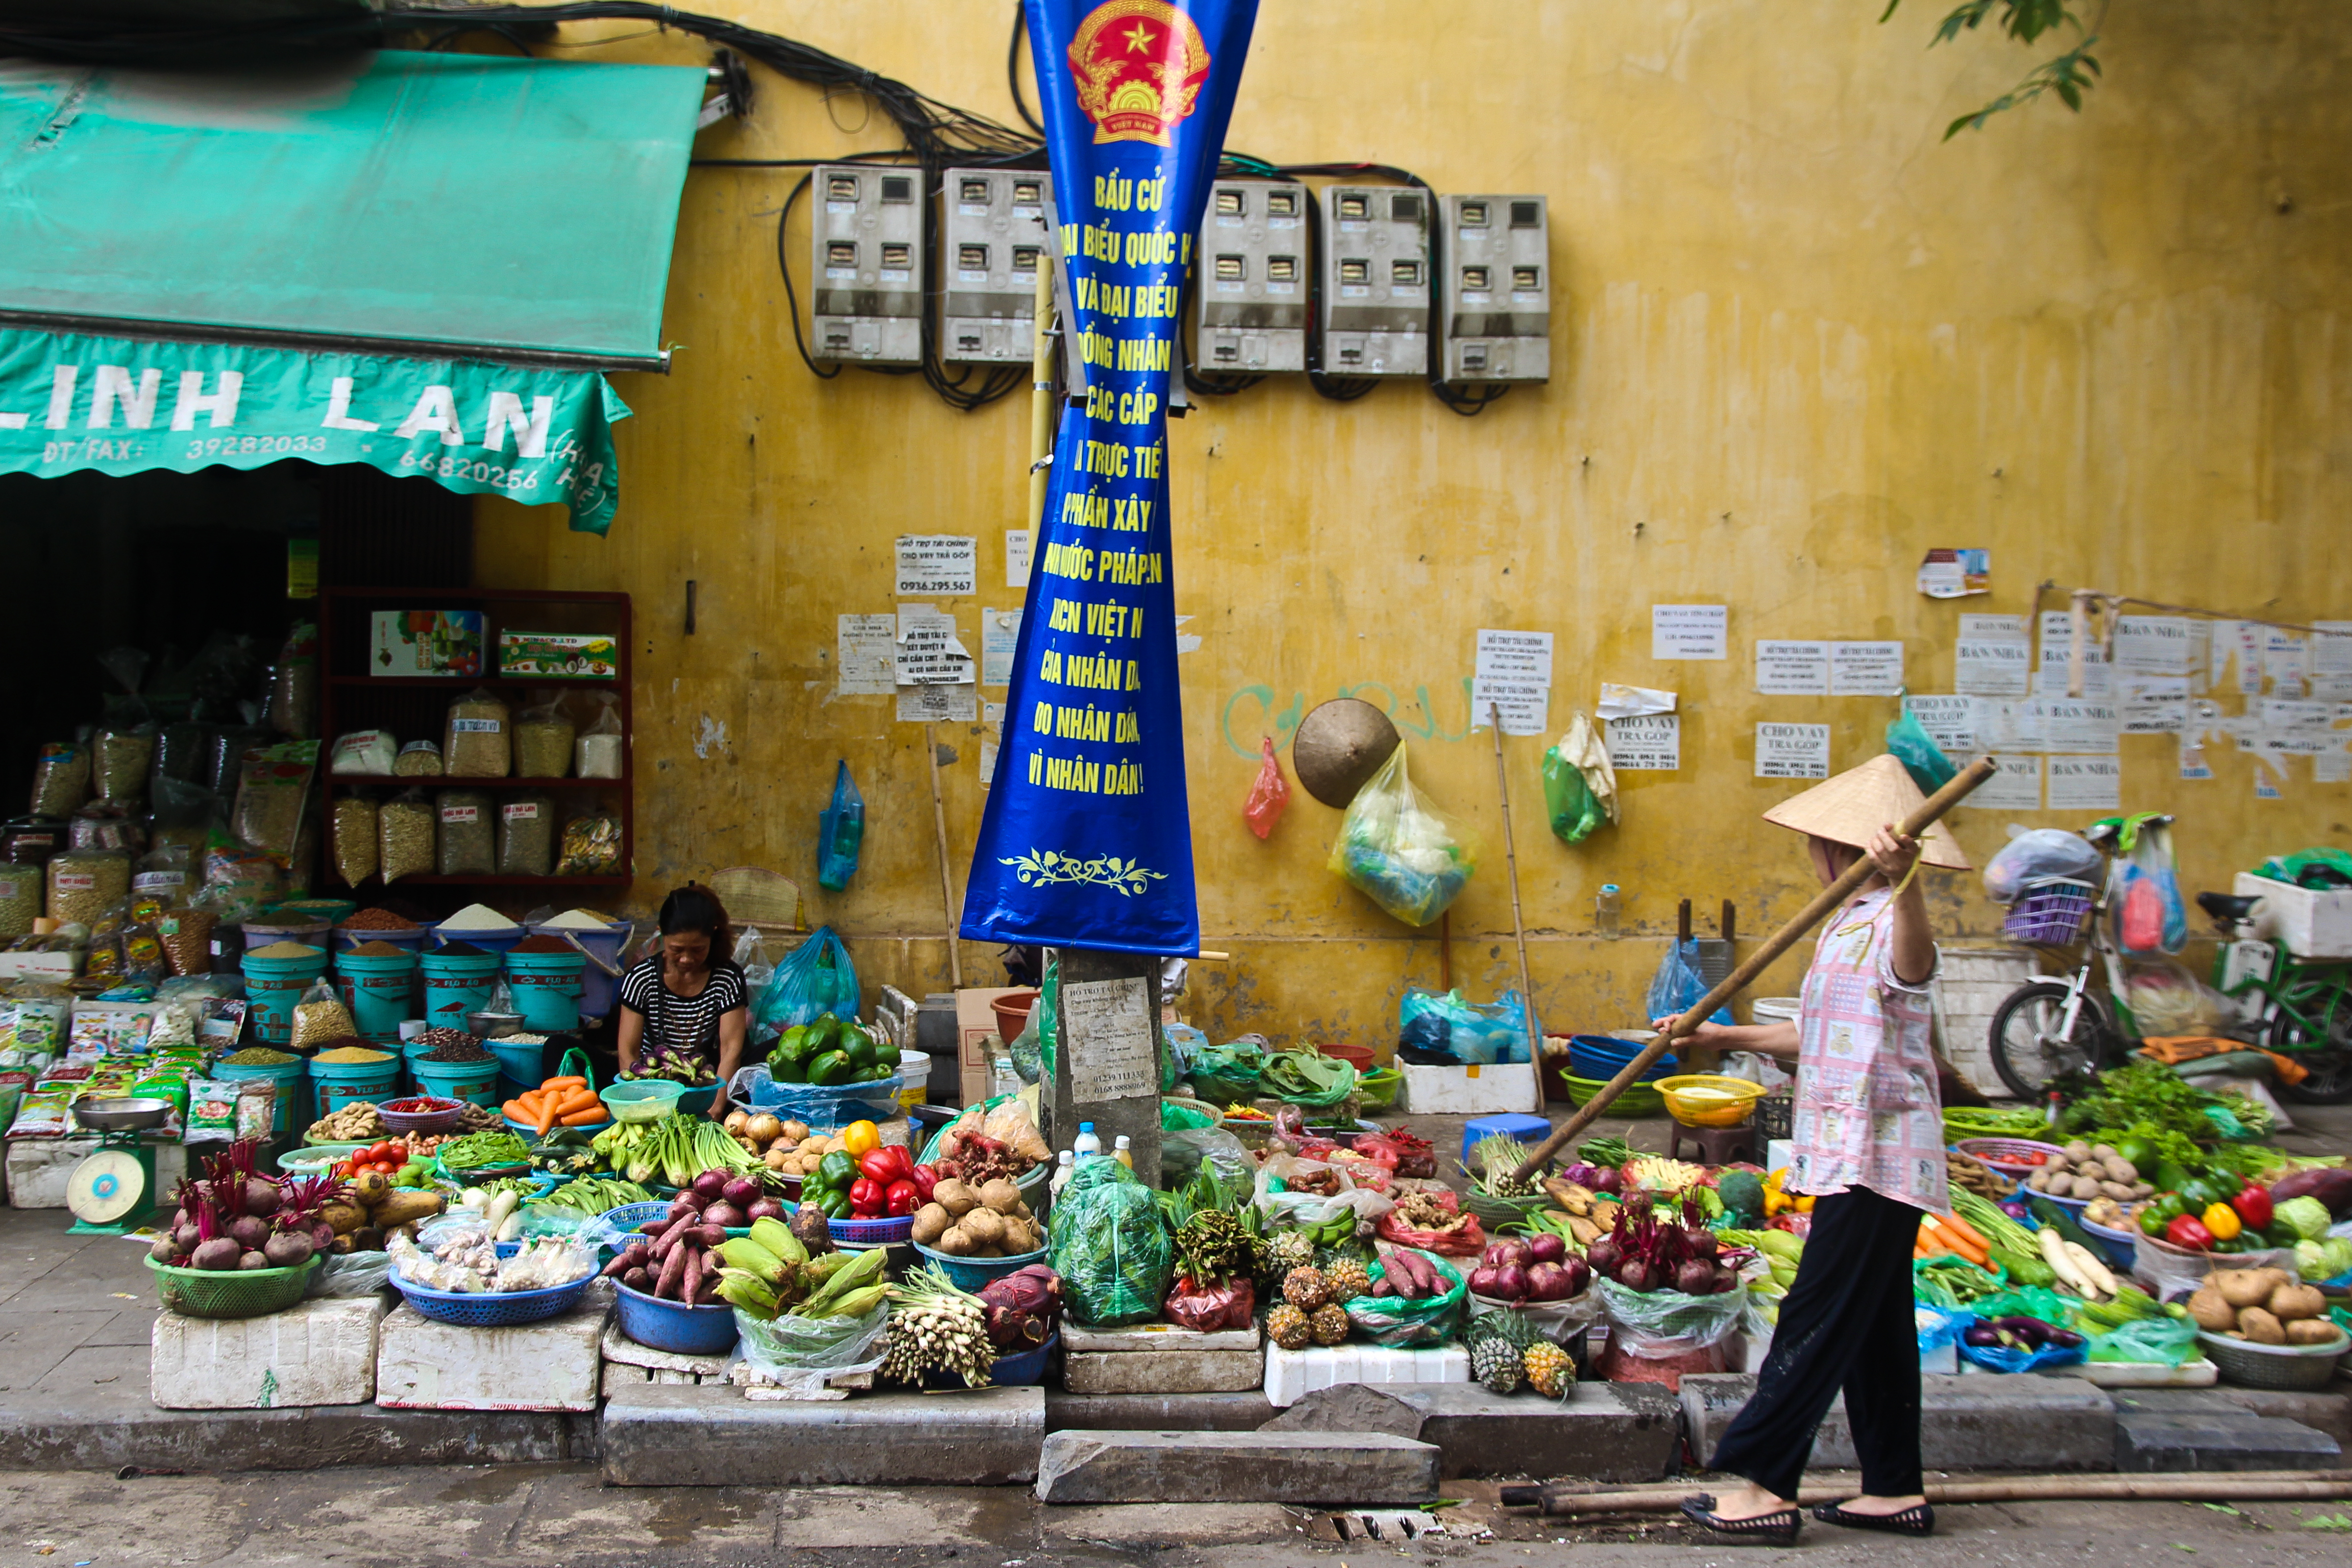 36 hours in Hanoi, Vietnam - a street food experience